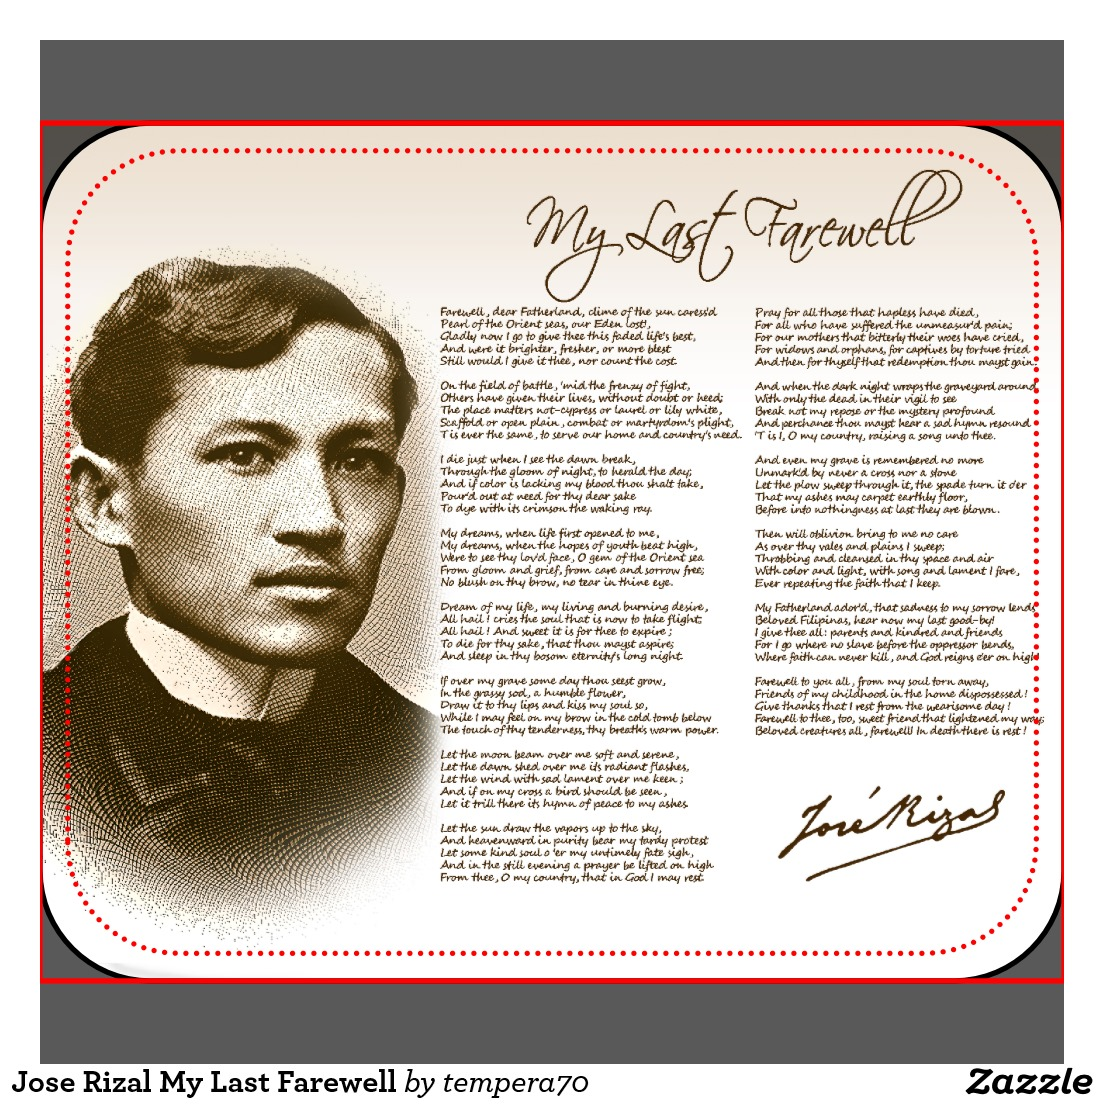 3rd stanza in my last farewell by jose rizal Rizal monument bantayog ni jose rizal: (my last farewell) becoming the major ingredient of bronze in the late 3rd millennium bc.